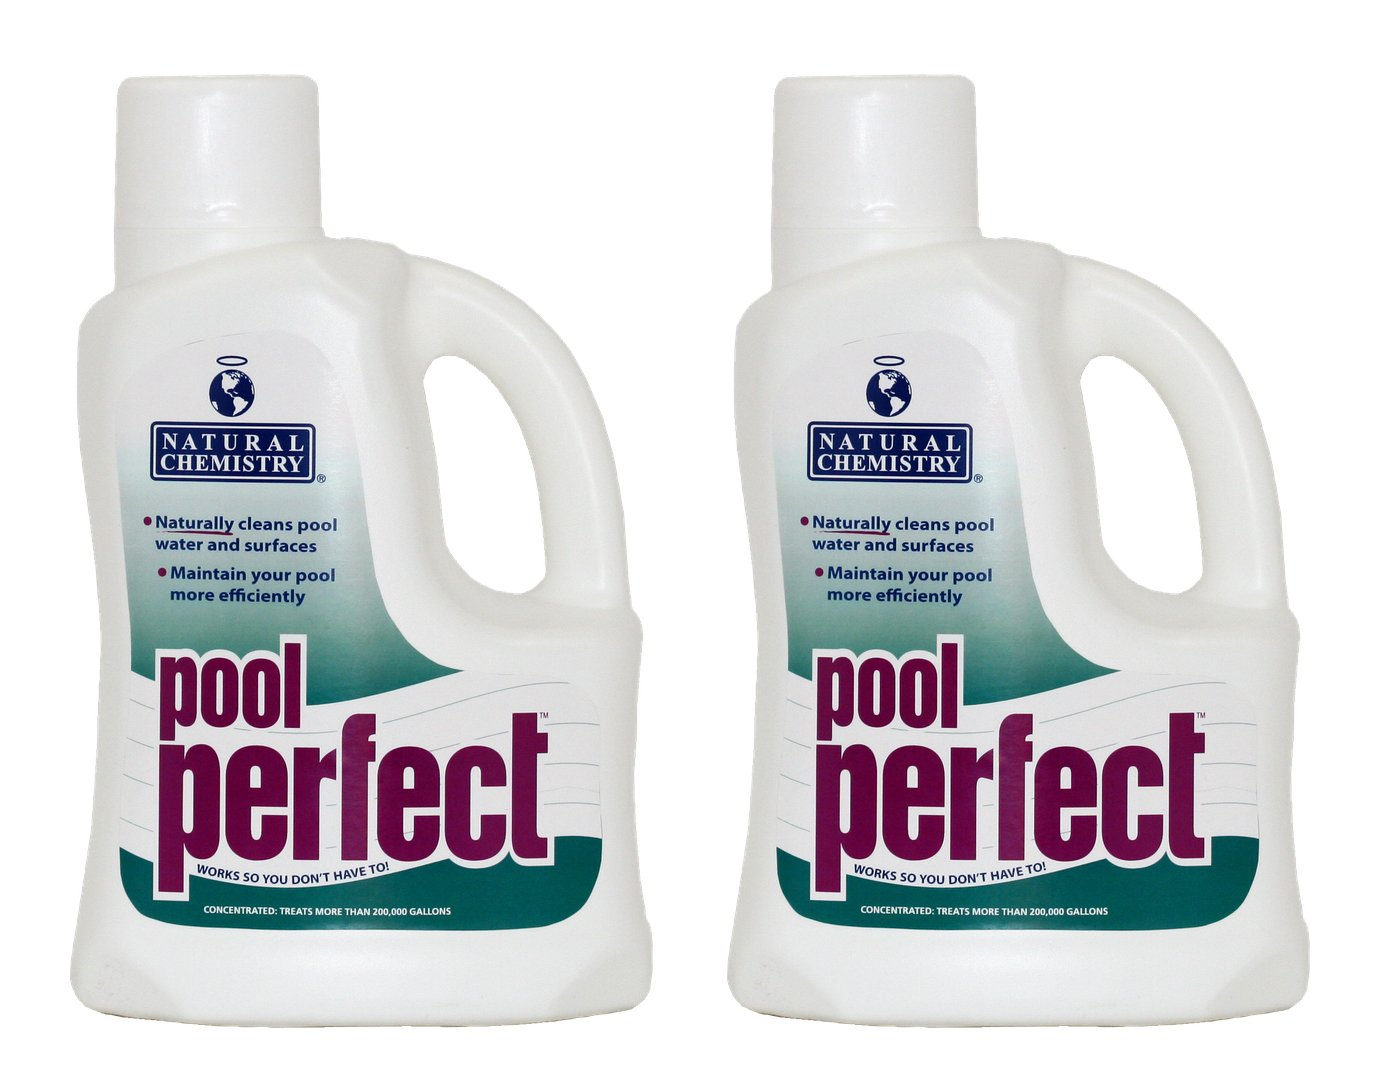 Natural Chemistry 2 03121 Swimming Pool Perfect Enzyme Oil Scum - 3 Liters Each by Natural Chemistry